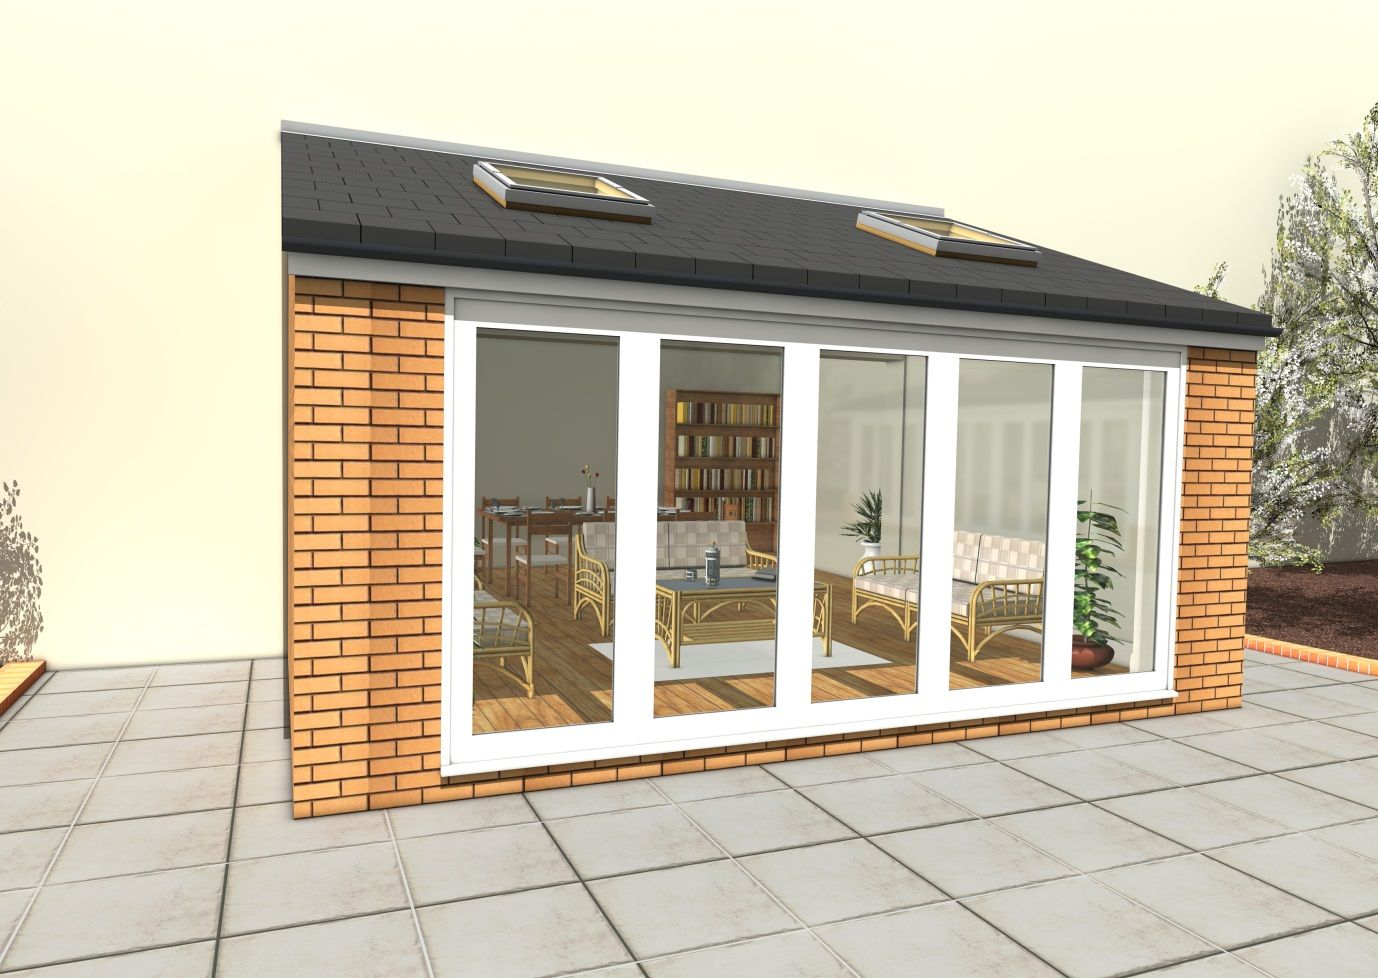 oliver james garden room extensions kew design garden